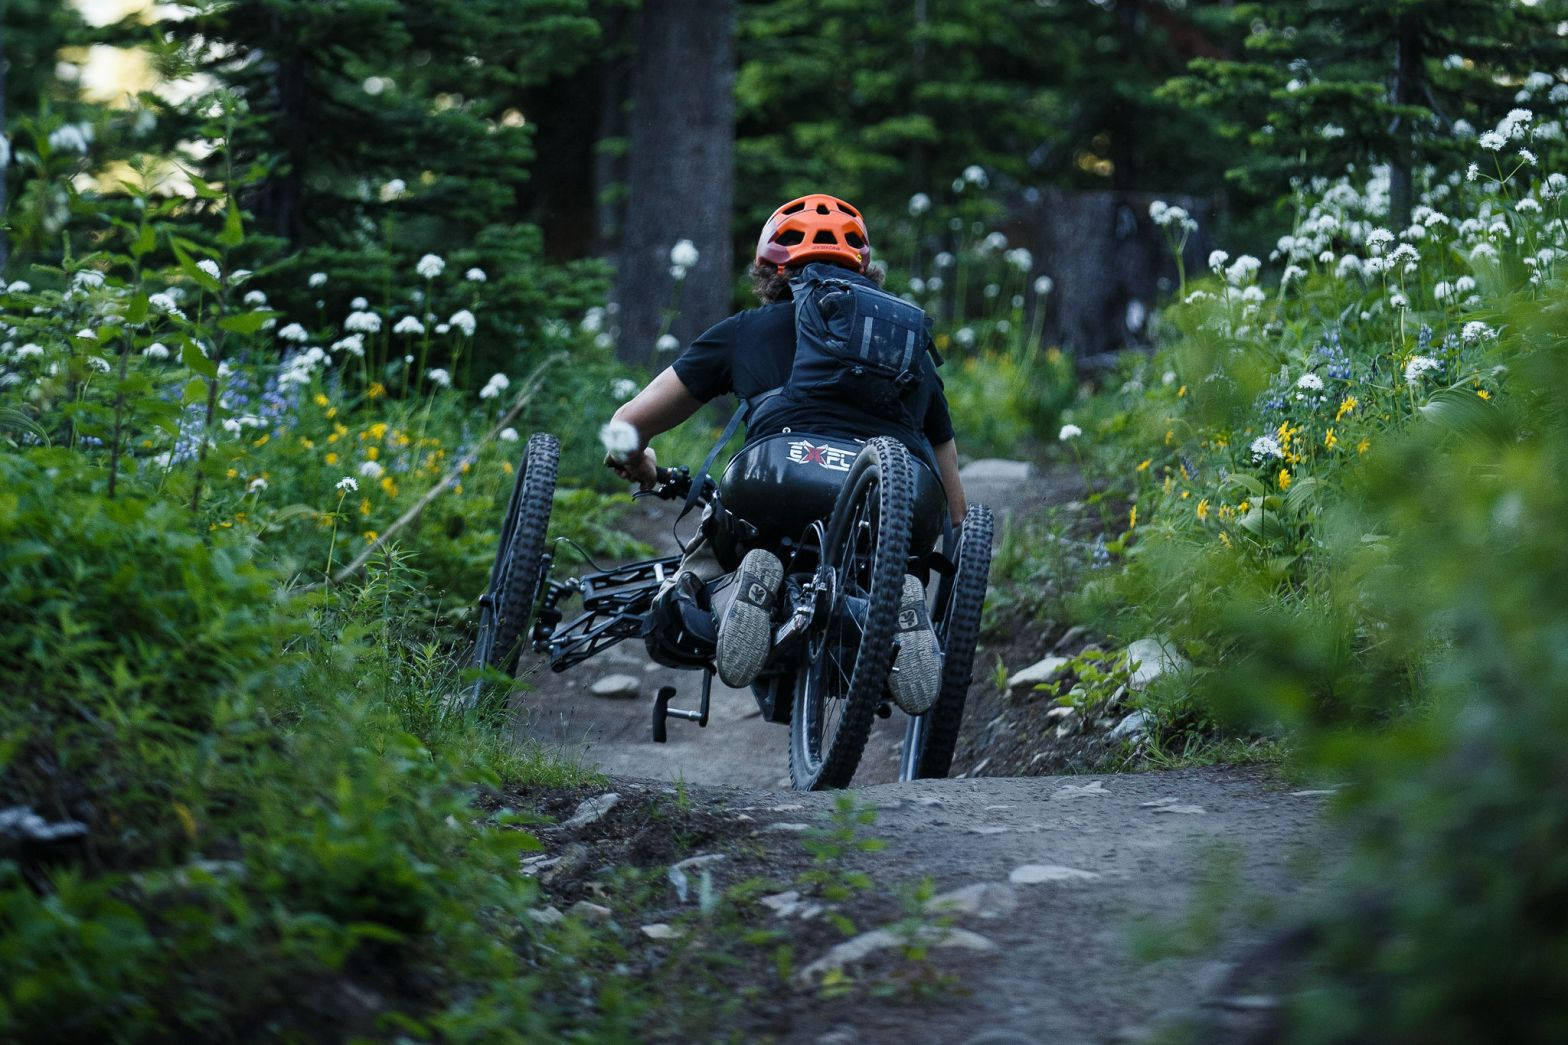 Adaptive Mountain Biker cruising through wildflowers at sun peaks bike park